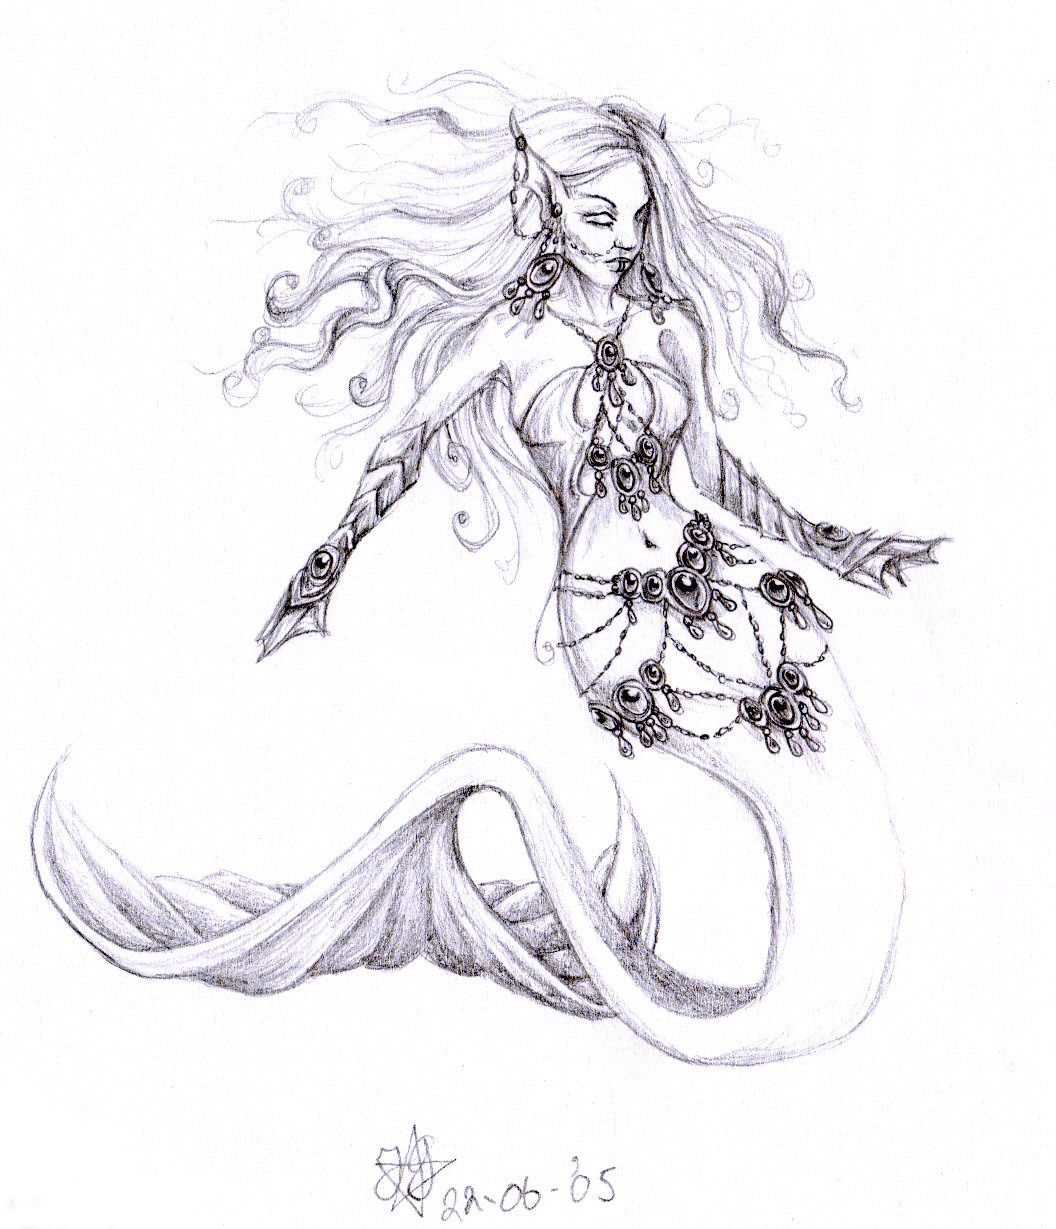 Evil Mermaid Mermaid Drawings Mermaid Tattoos Evil Mermaids